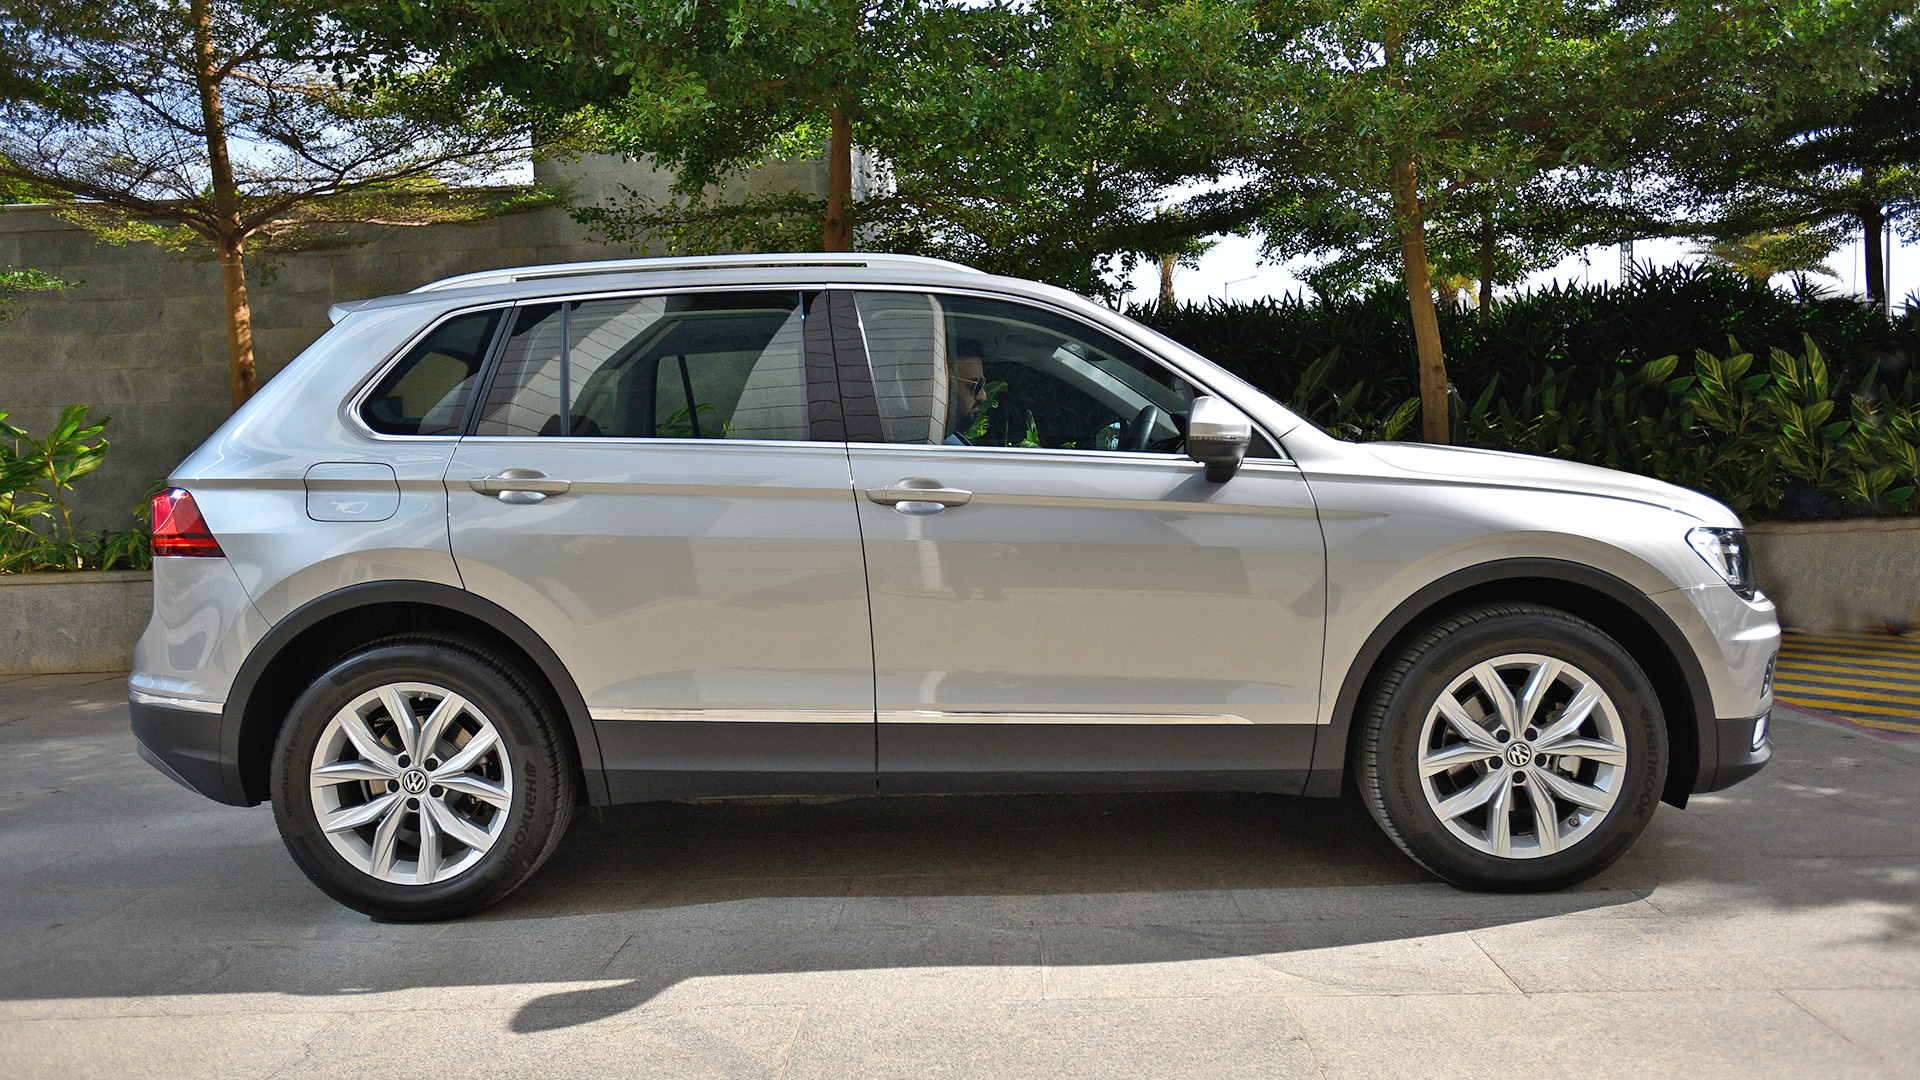 volkswagen tiguan 2017 price mileage reviews specification gallery overdrive. Black Bedroom Furniture Sets. Home Design Ideas